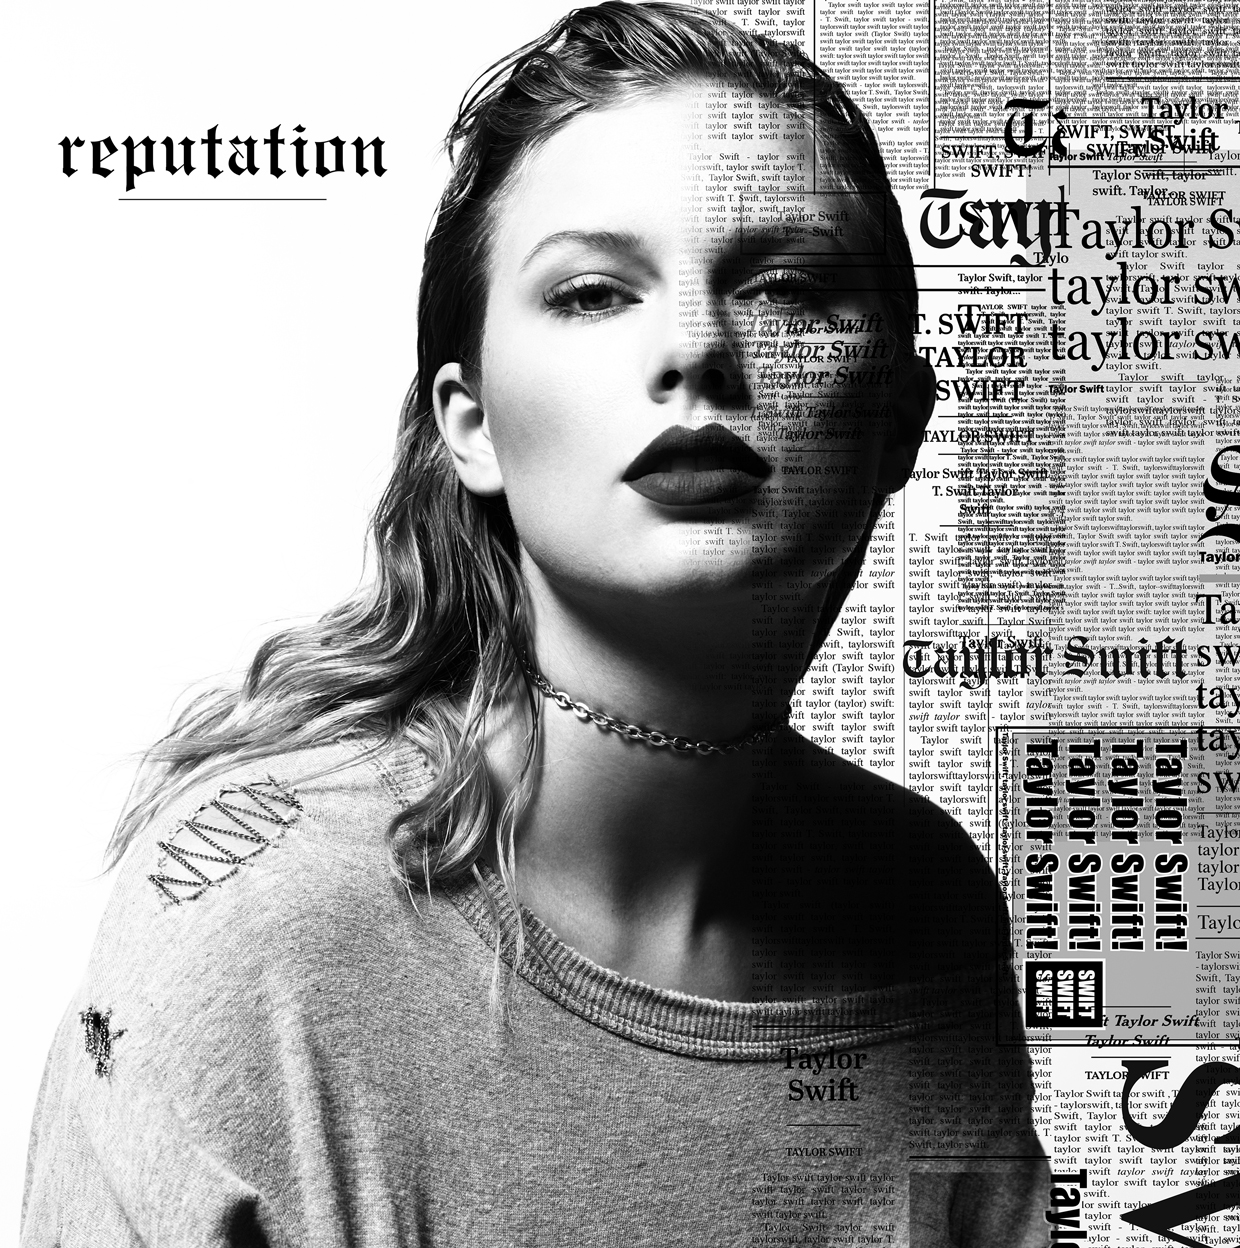 https://www.billboard.com/articles/columns/pop/7941777/taylor-swift-reputation-album-cover-make-overs